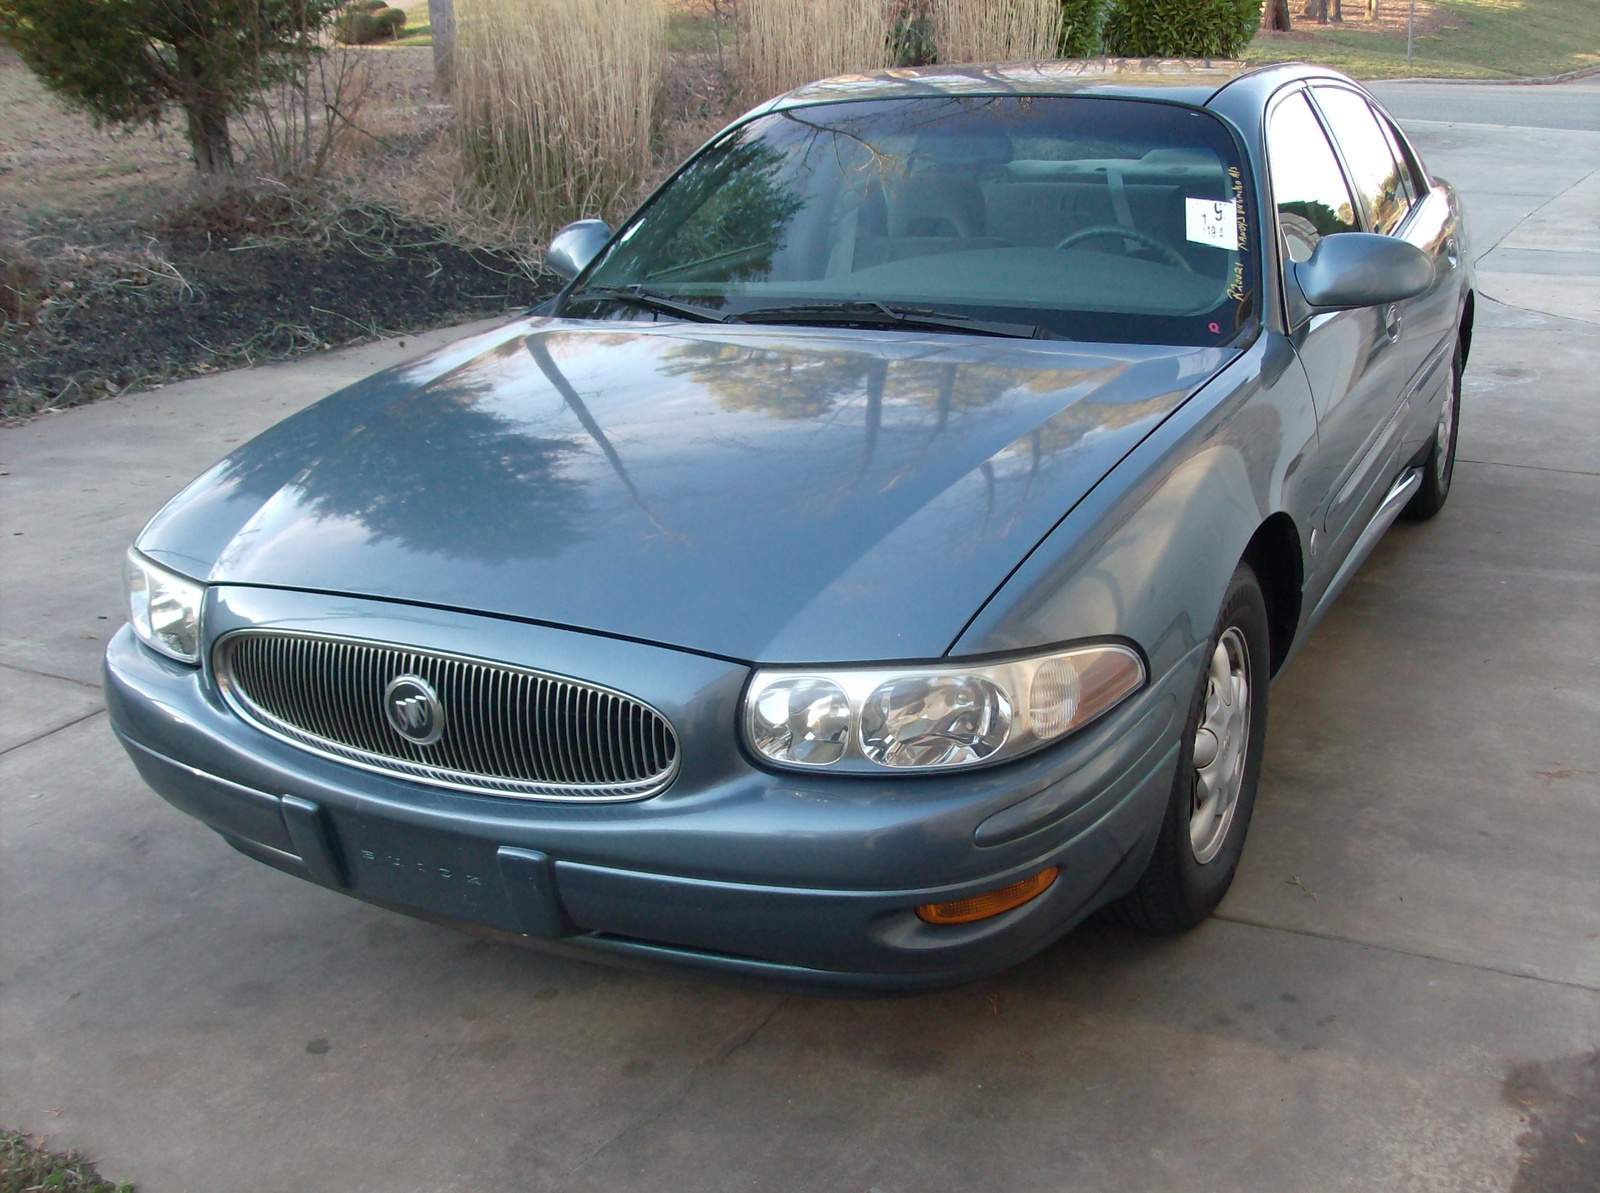 2001 buick lesabre problems autos post. Black Bedroom Furniture Sets. Home Design Ideas